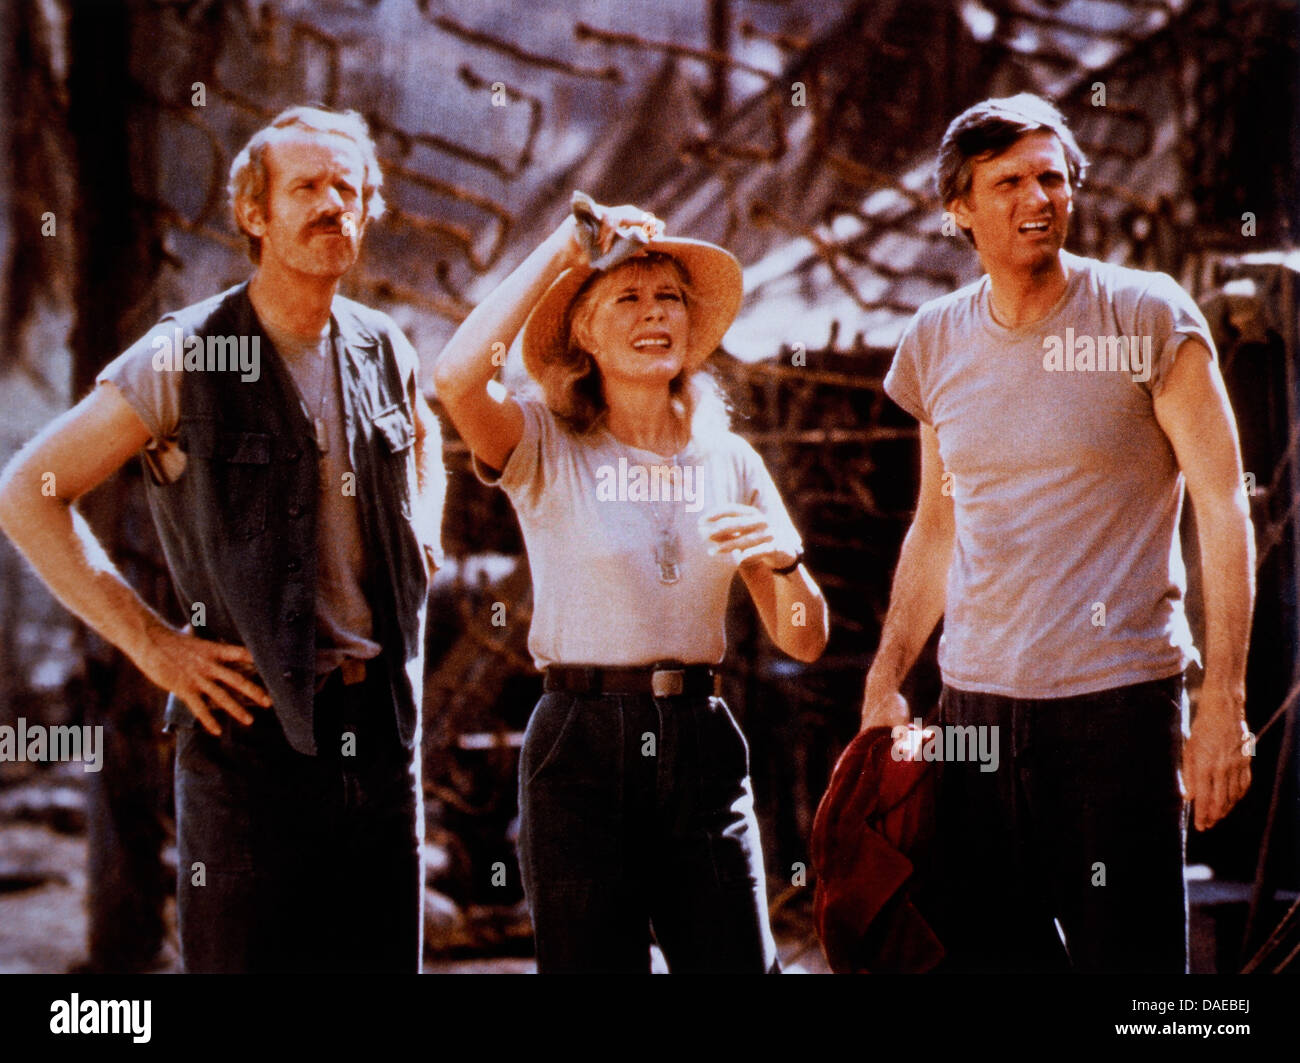 Mike Farrell, Loretta Swit and Alan Alda, On-Set of the Television Series, M*A*S*H, 1983 - Stock Image